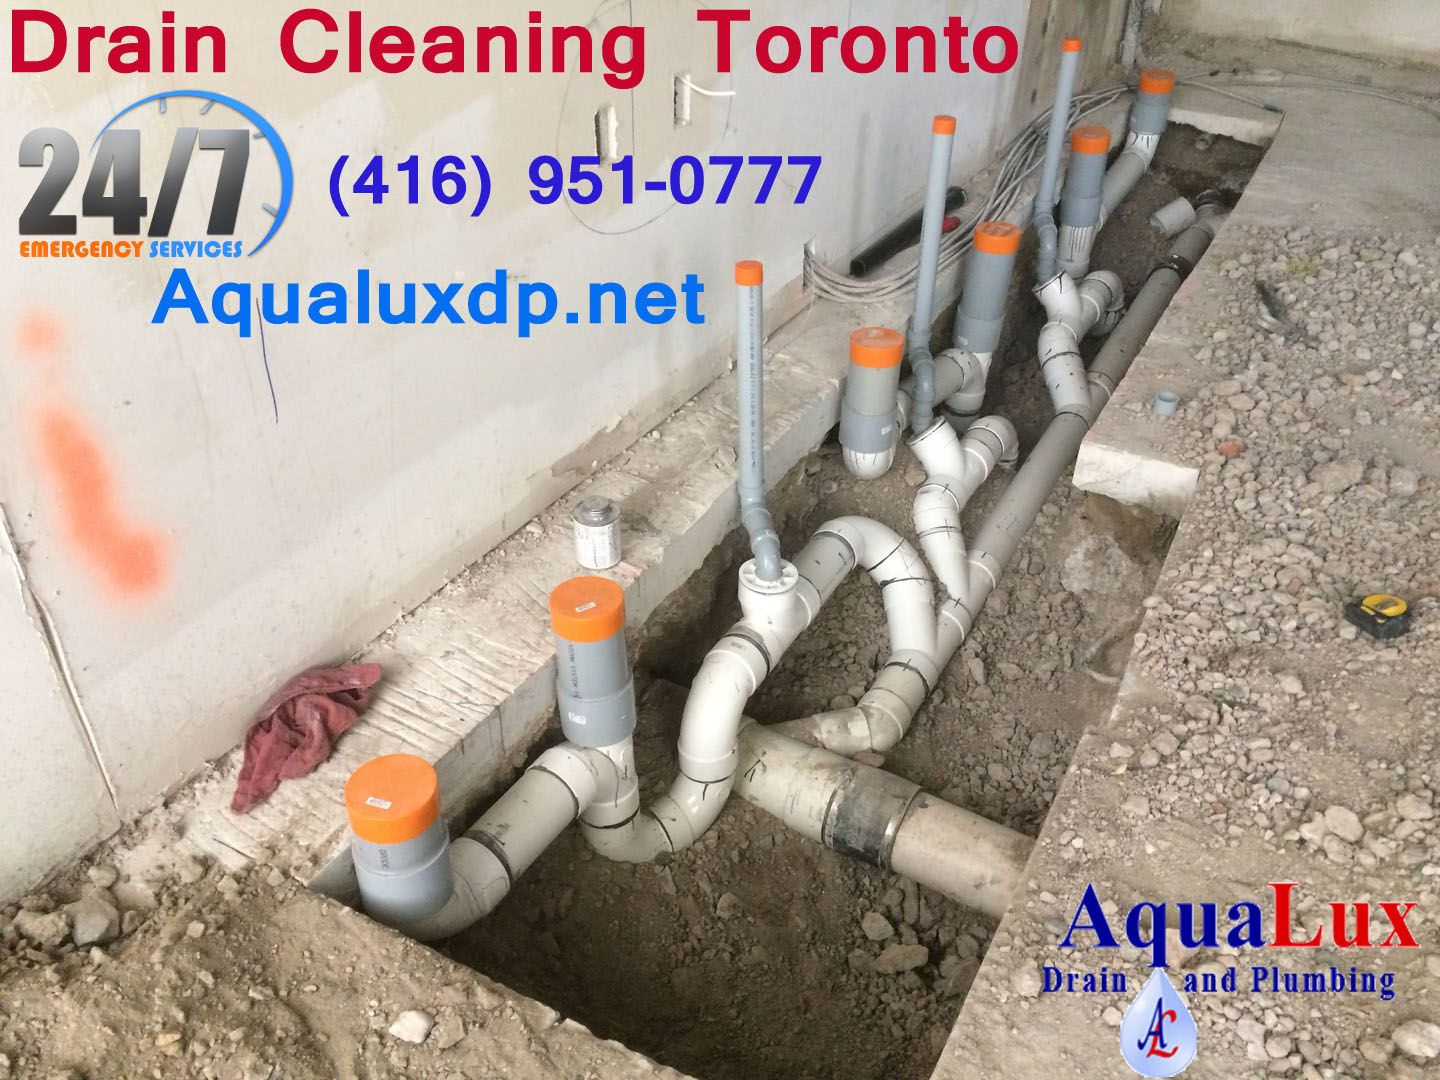 Need Drain Cleaning Services You Can Trust We Offer Fast Affordable Effective Drain Cleaning Services For Indianapolis Plumbing Drains Drain Drain Cleaner